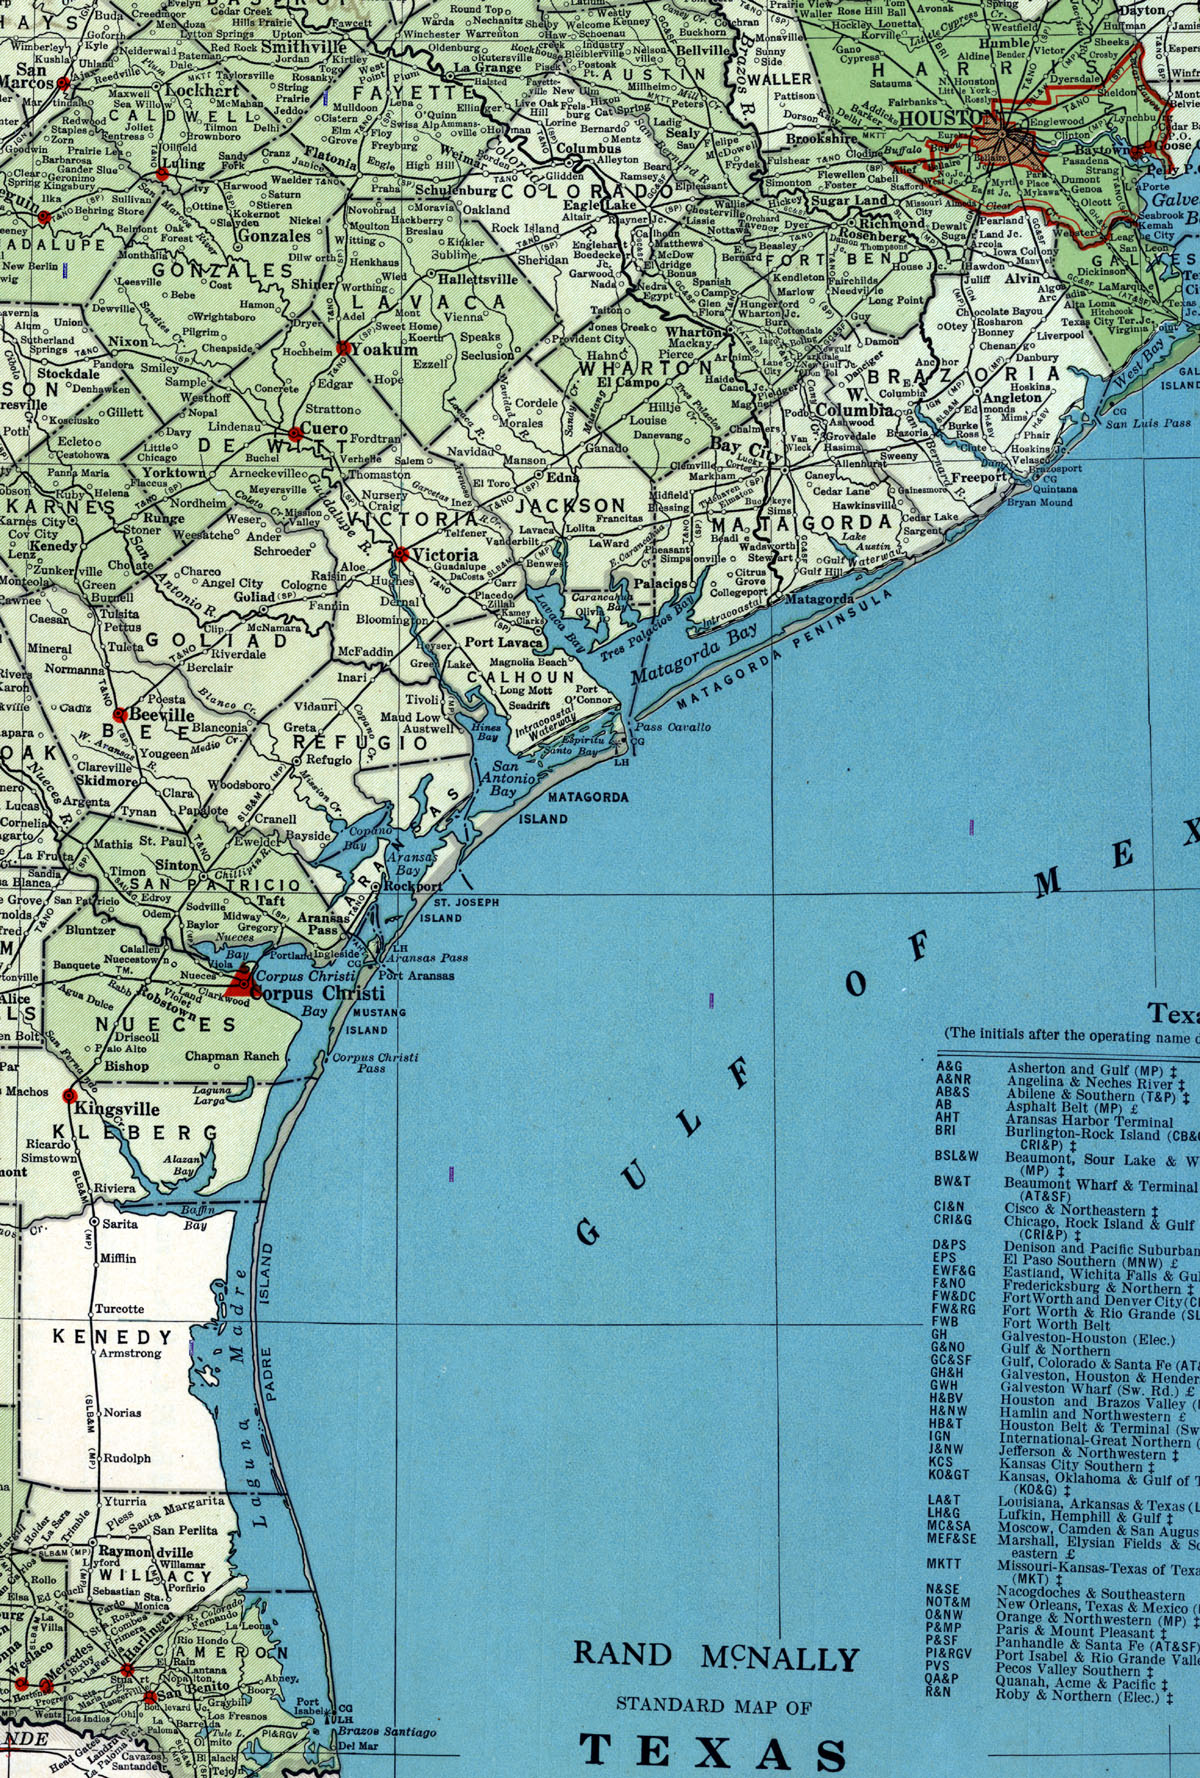 Louis Brownsville Mexico Railway Company Tex map showing